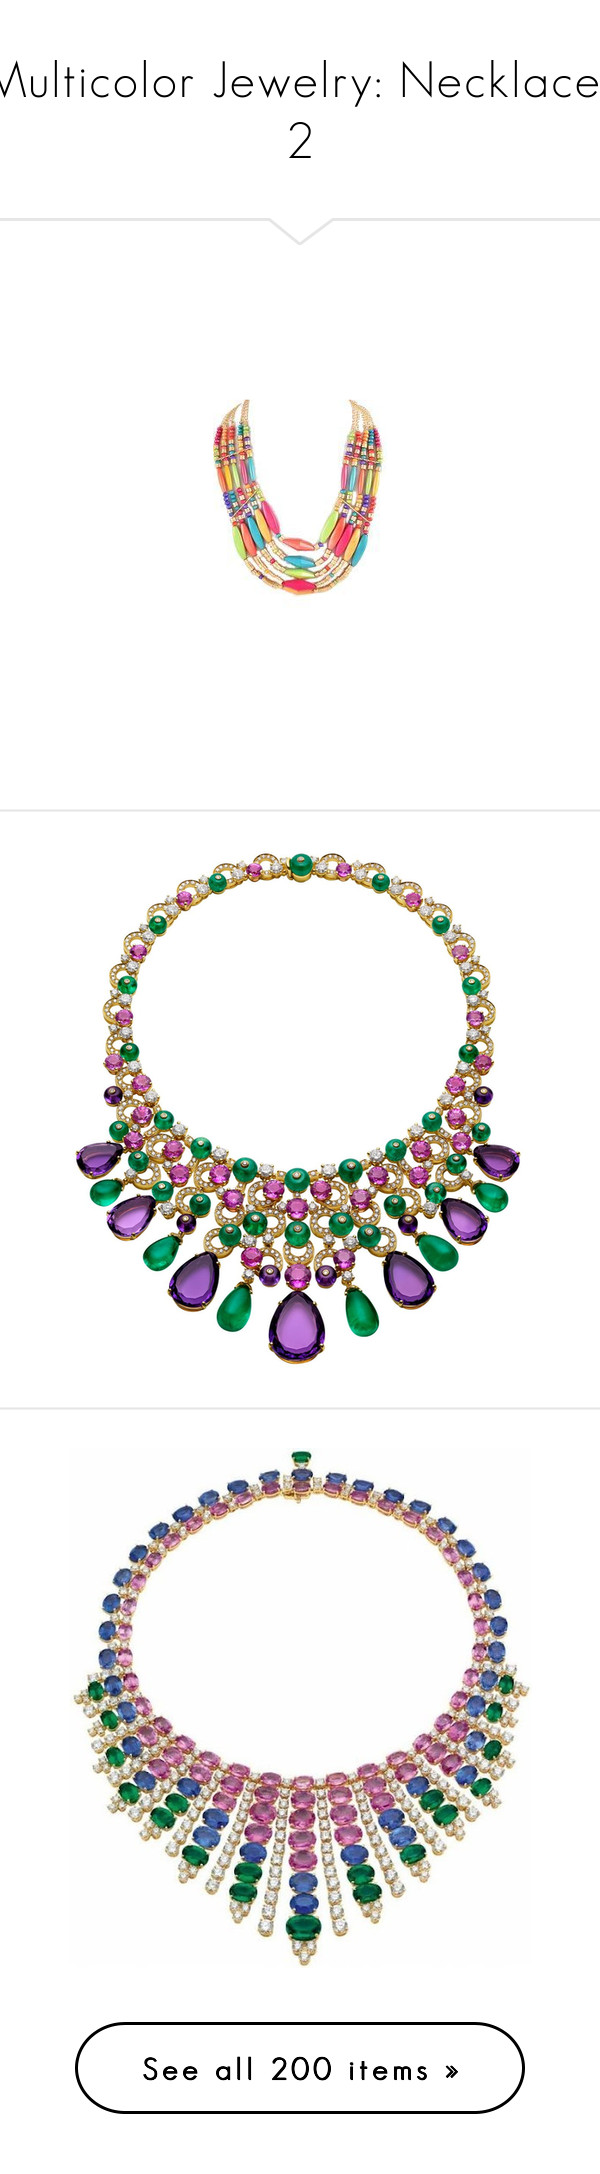 """Multicolor Jewelry: Necklaces 2"" by franceseattle ❤ liked on Polyvore featuring jewelry, necklaces, multi-chain necklace, multicolor bead necklace, gold tone necklace, layered chain necklace, multi row necklace, bulgari jewellery, bulgari jewelry and bulgari"